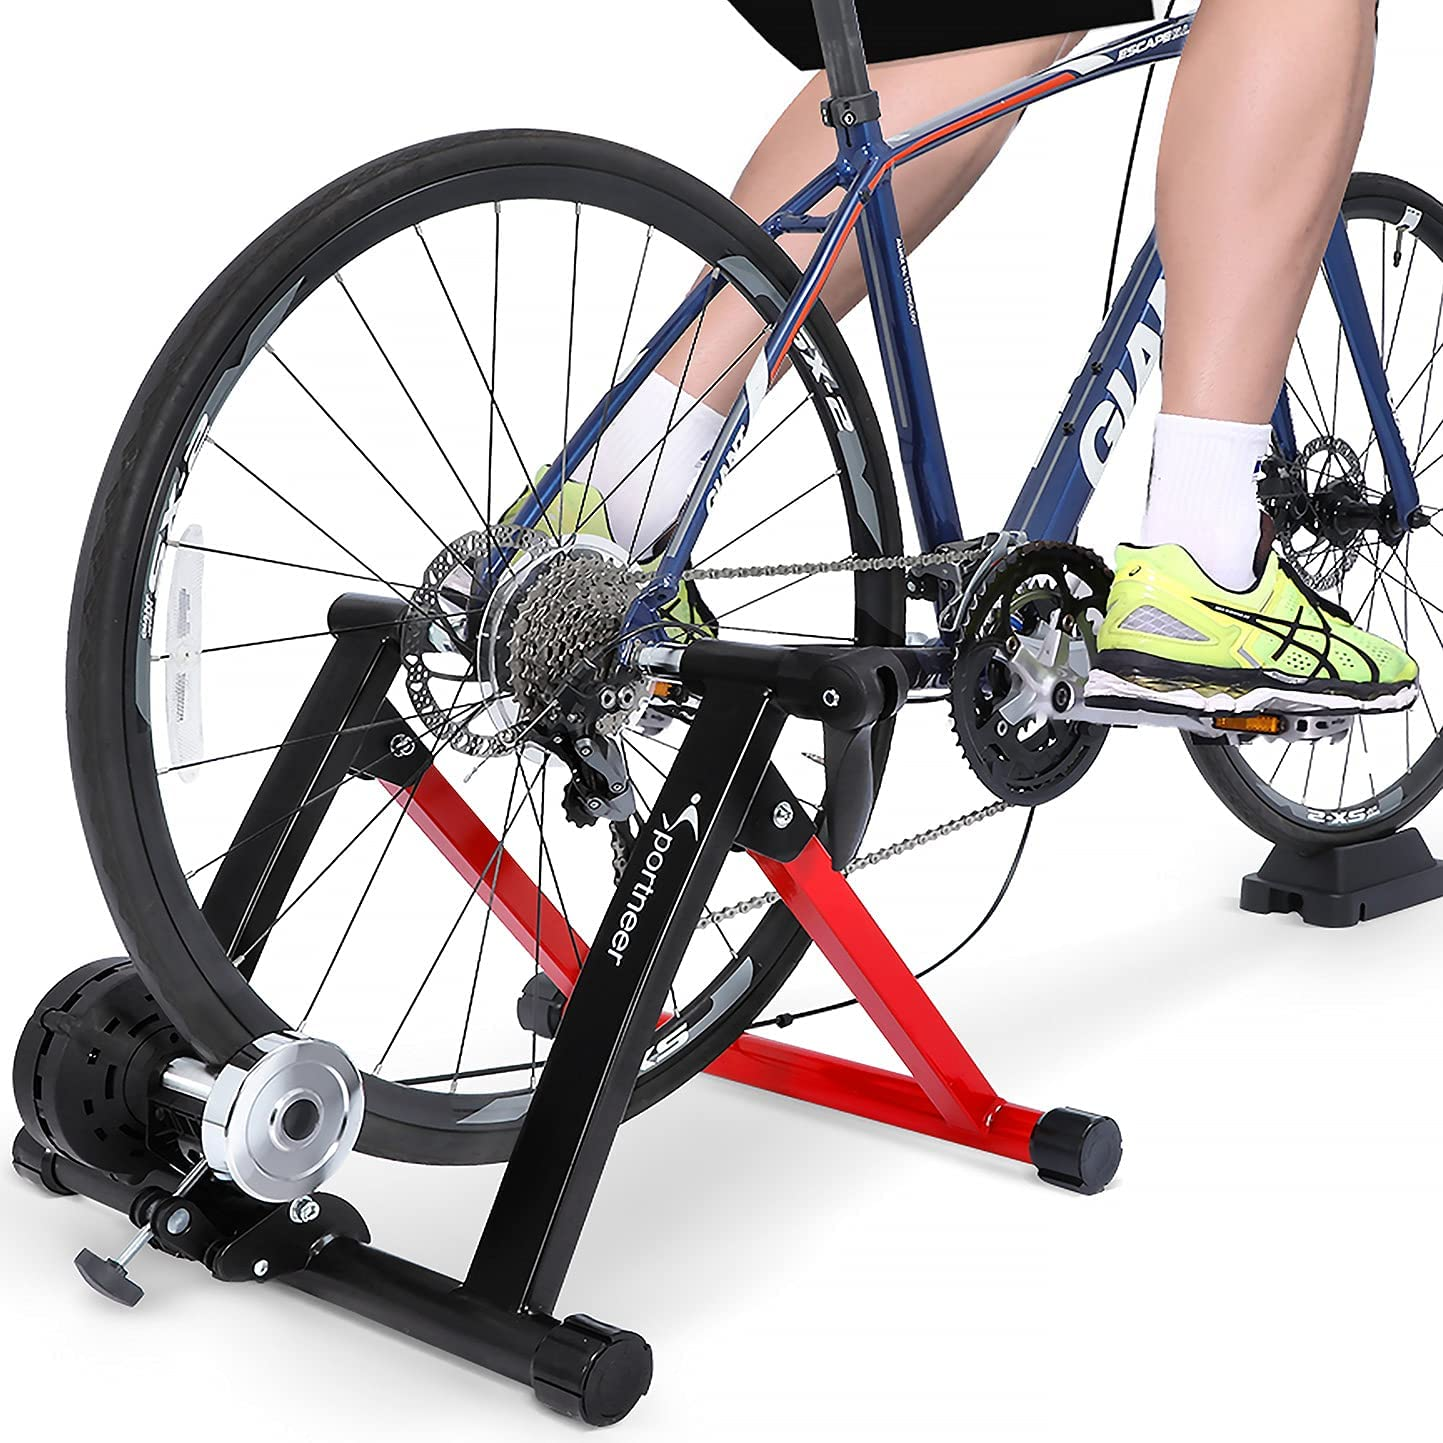 Sportneer Bike Max 86% OFF Trainer Stand Steel Max 87% OFF Sta Exercise Magnetic Bicycle